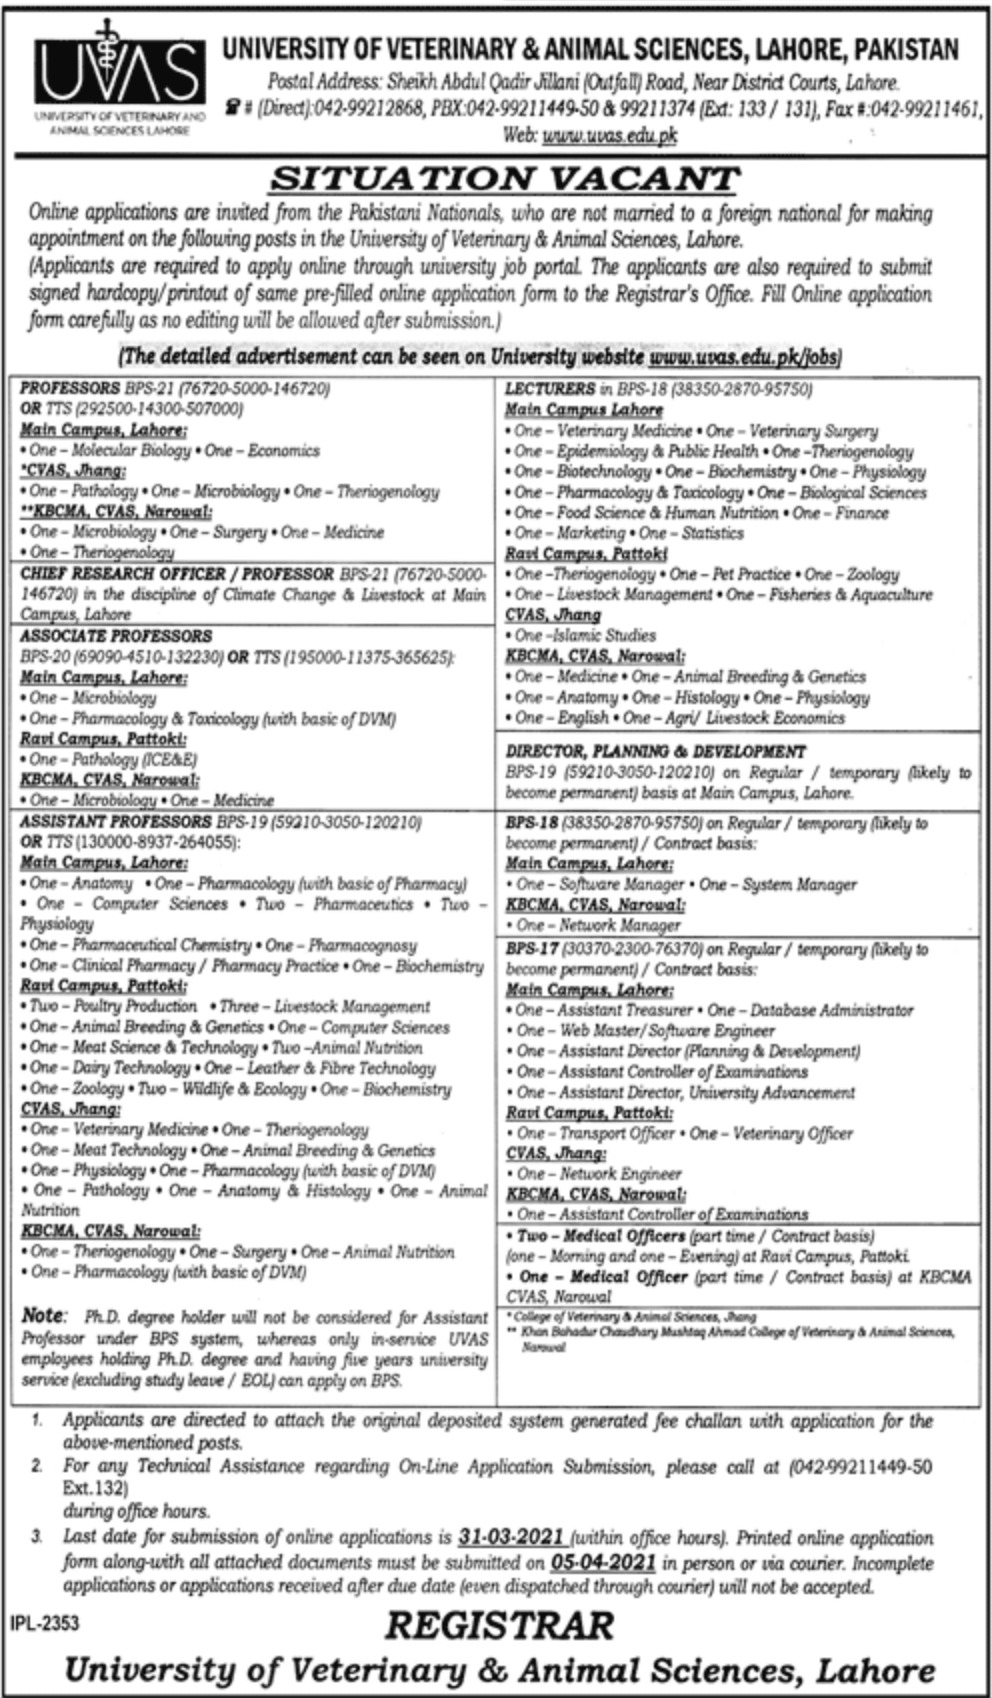 University of Veterinary & Animal Sciences UVAS Lahore Jobs March 2021